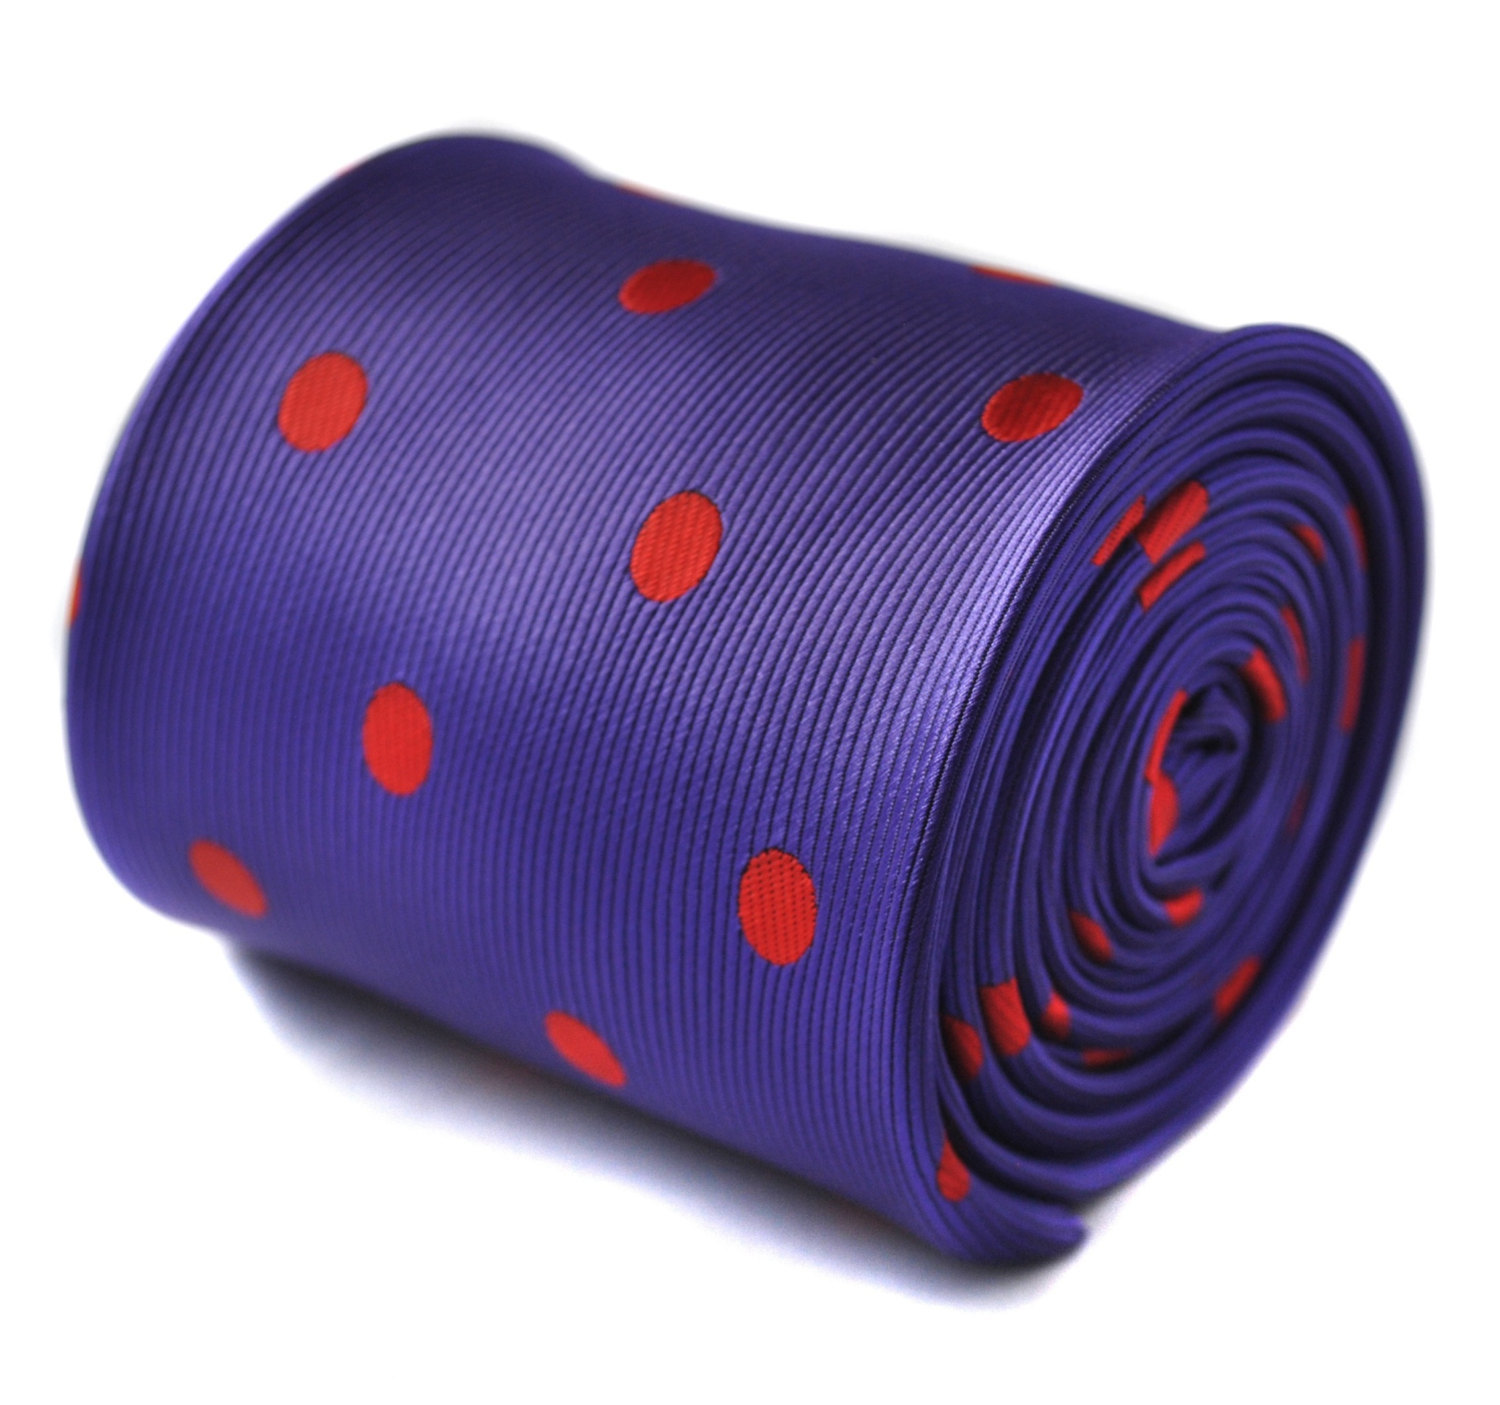 purple and red polka spot tie with signature floral design to the rear by Freder